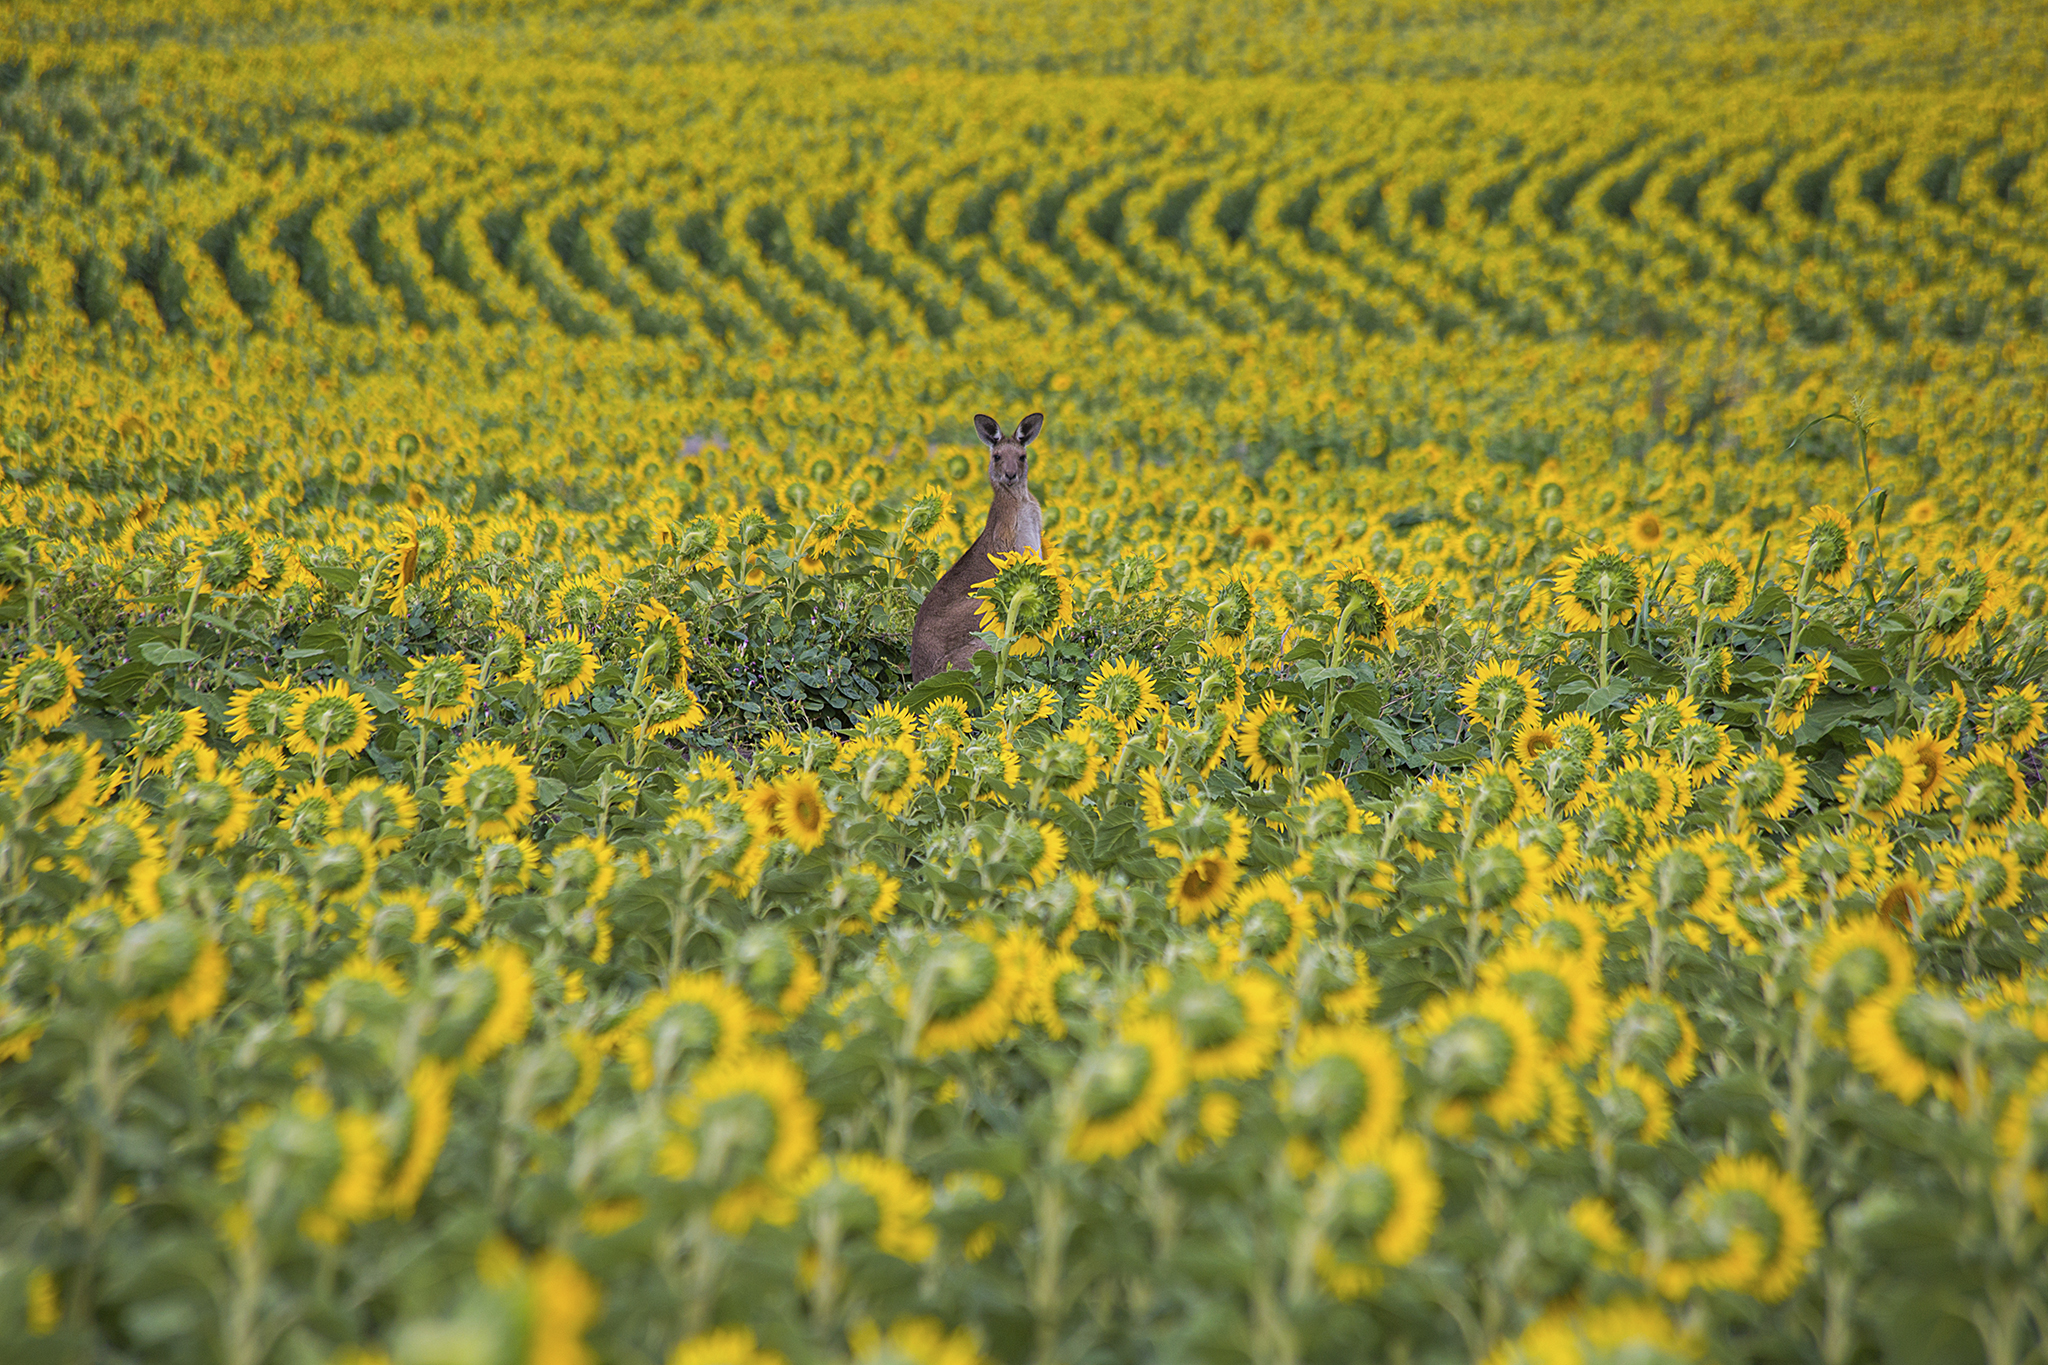 Kangaroo in Sunflowers